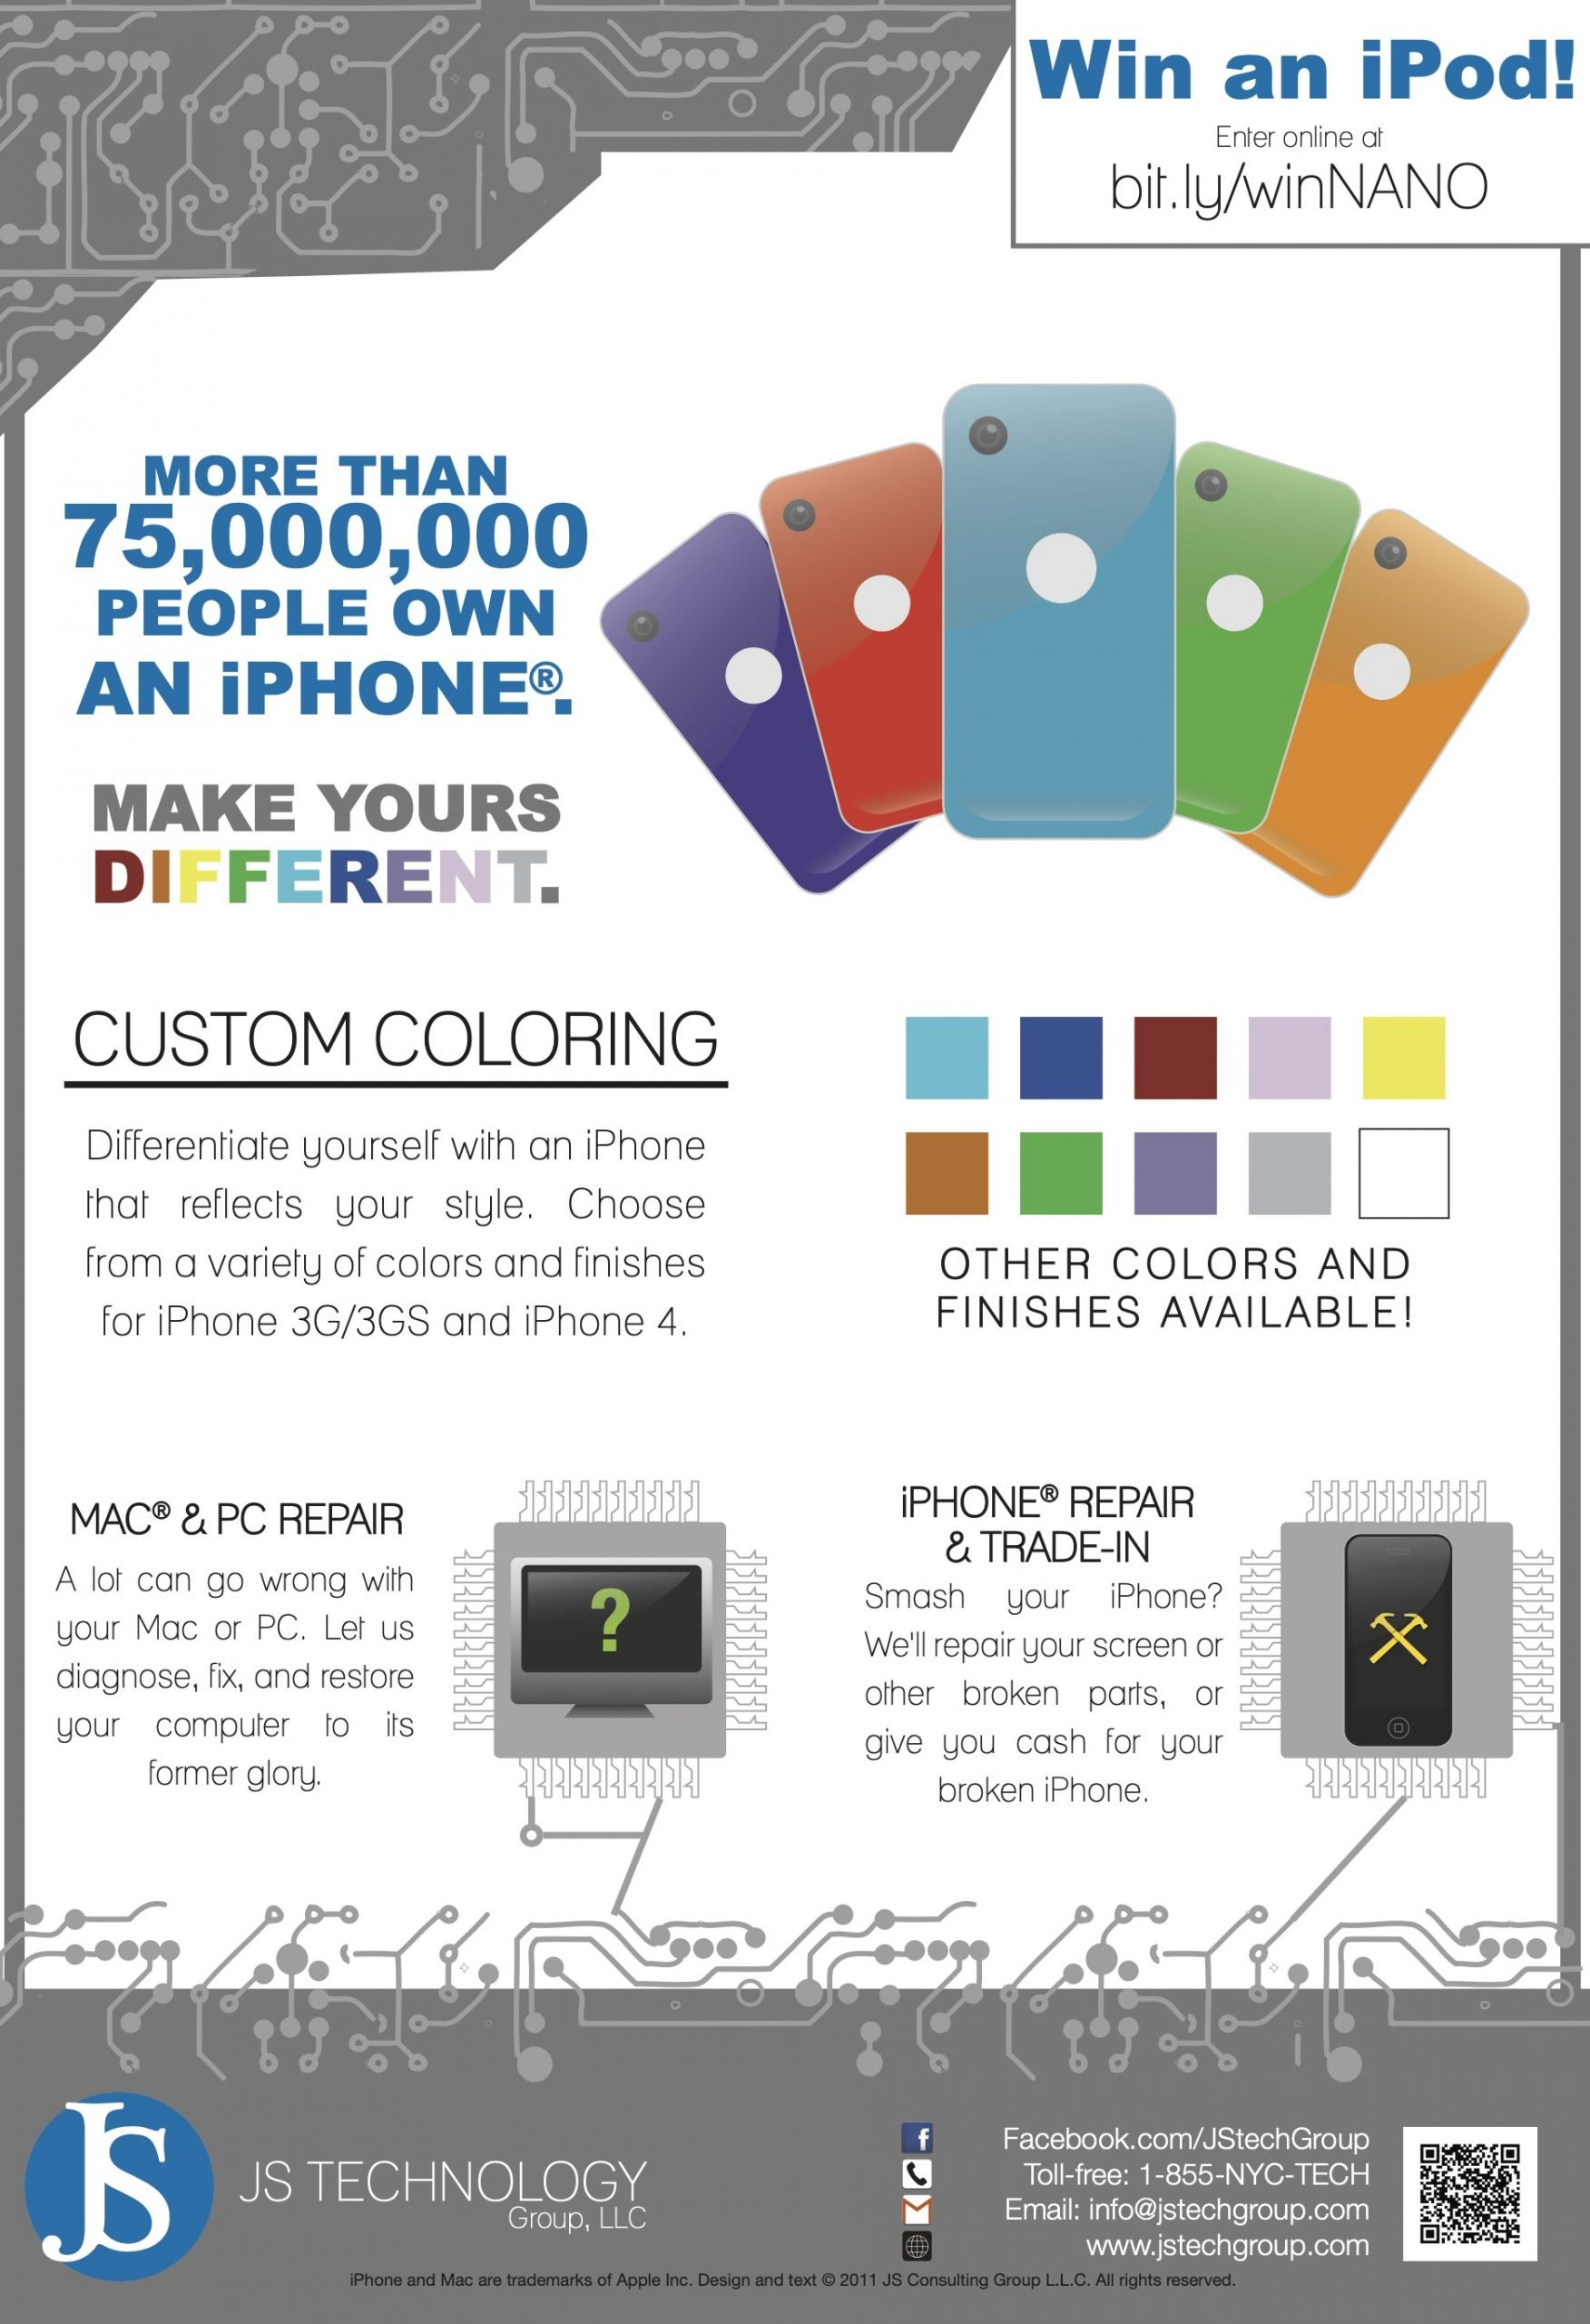 Old JS Technology Advertisement. iPhone color customization.